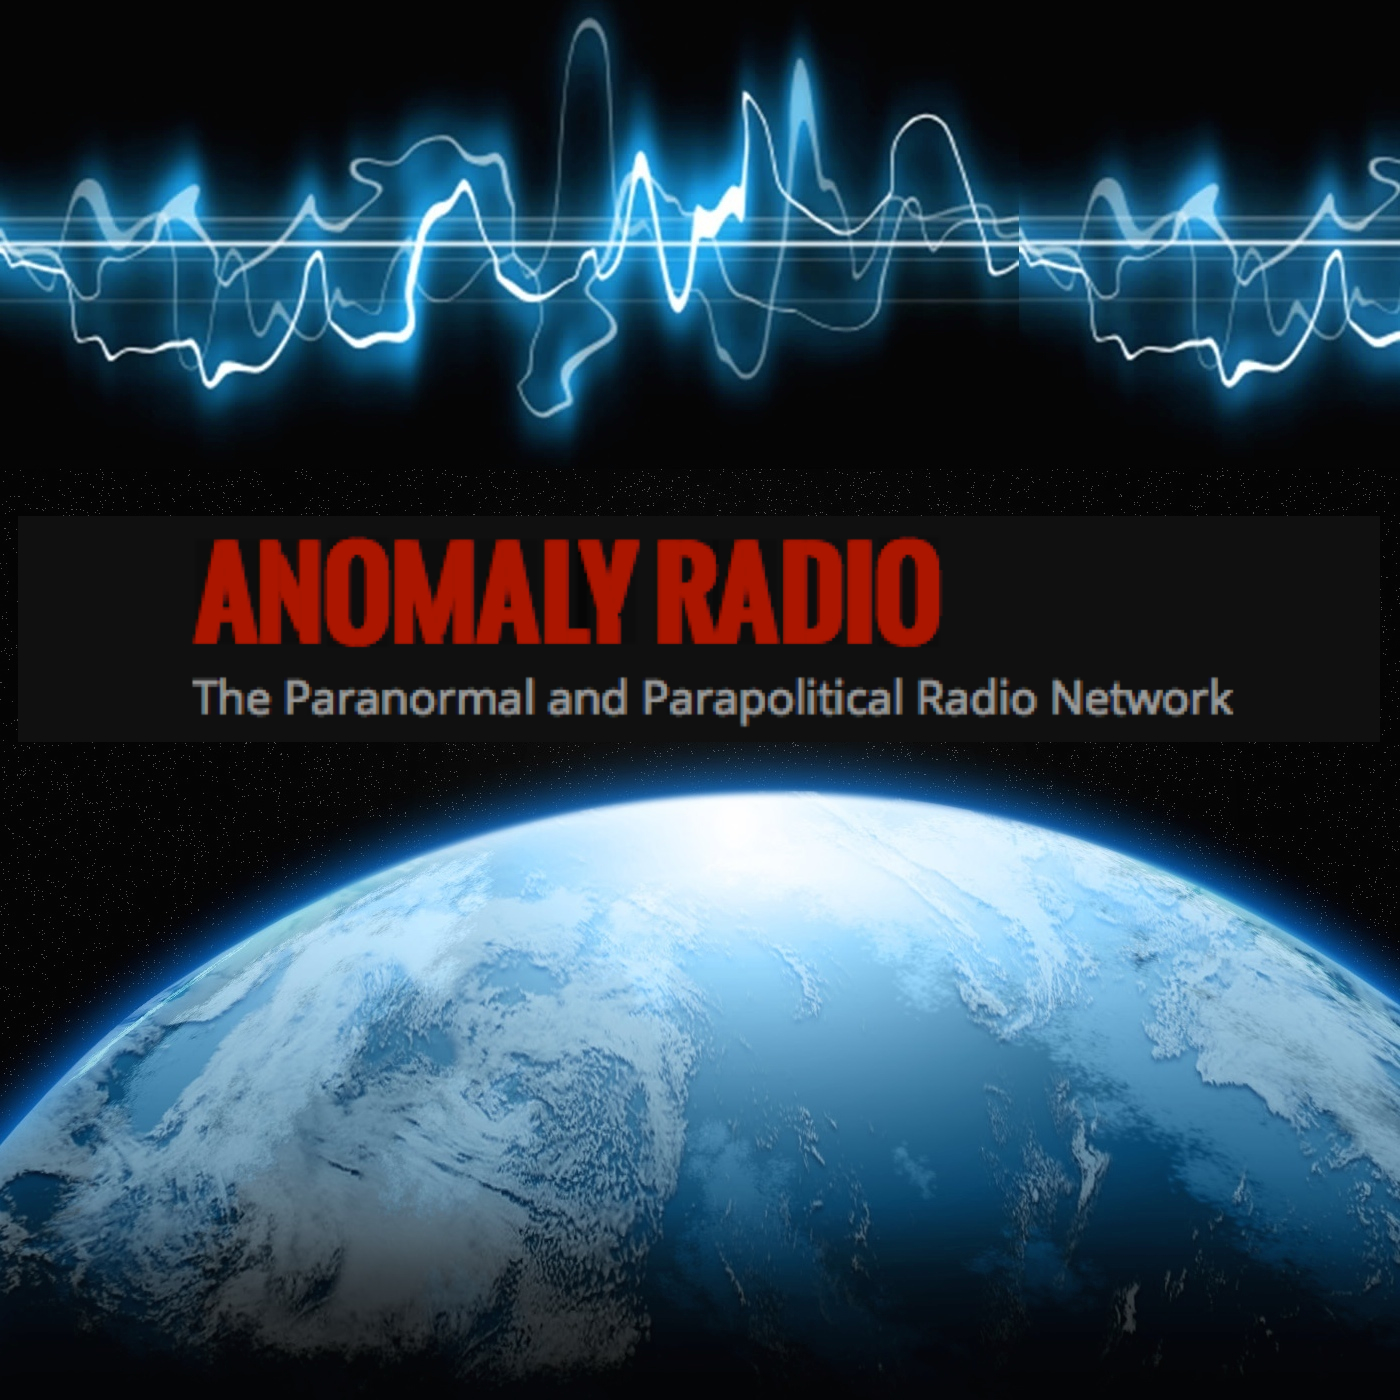 Anomaly Radio Network - Streaming 24/7 Since The Last Century